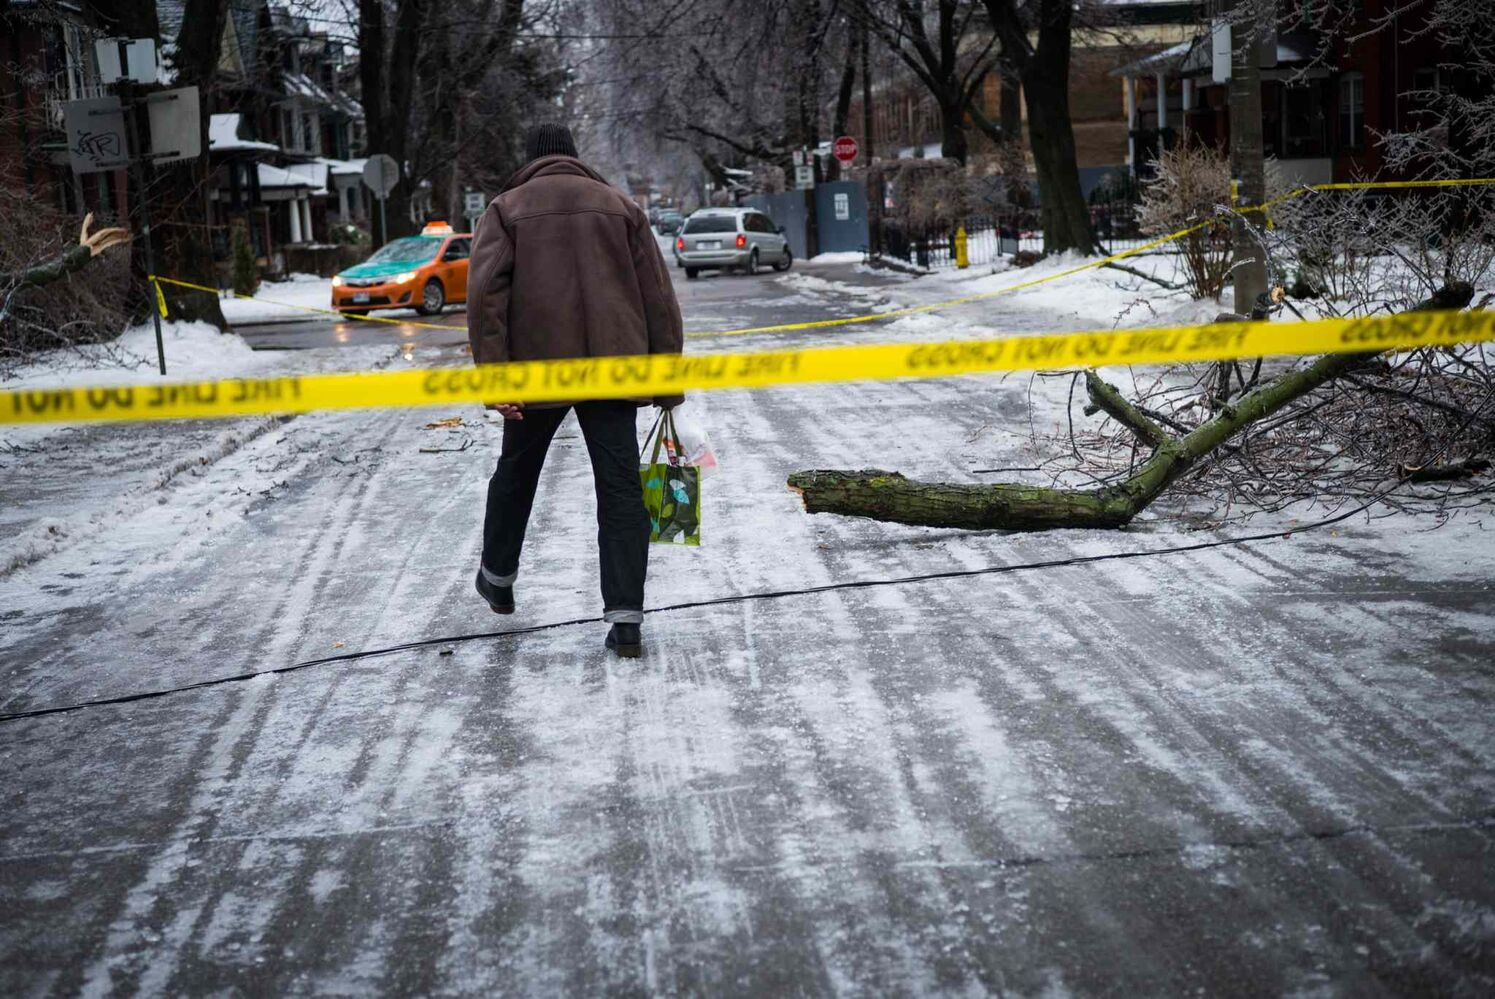 A man steps over downed power lines near Dufferin Grove Park in Toronto on Sunday. (Ian Willms / The Canadian Press)